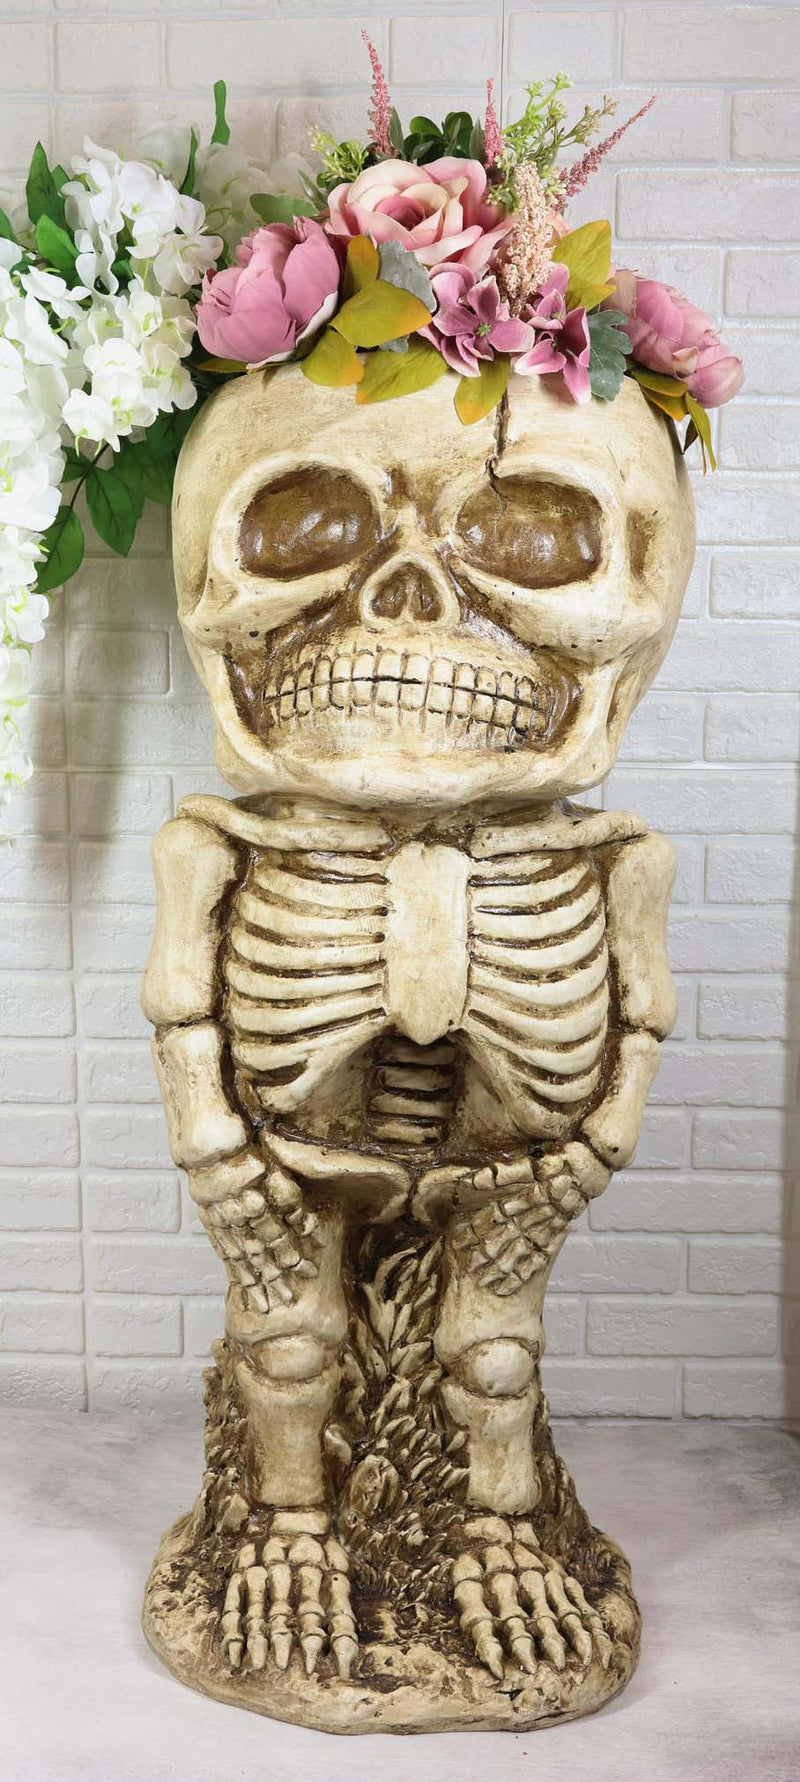 Large Grinning Baby Skeleton Skull Floral Nursery Plant Planter Bowl Pot Statue